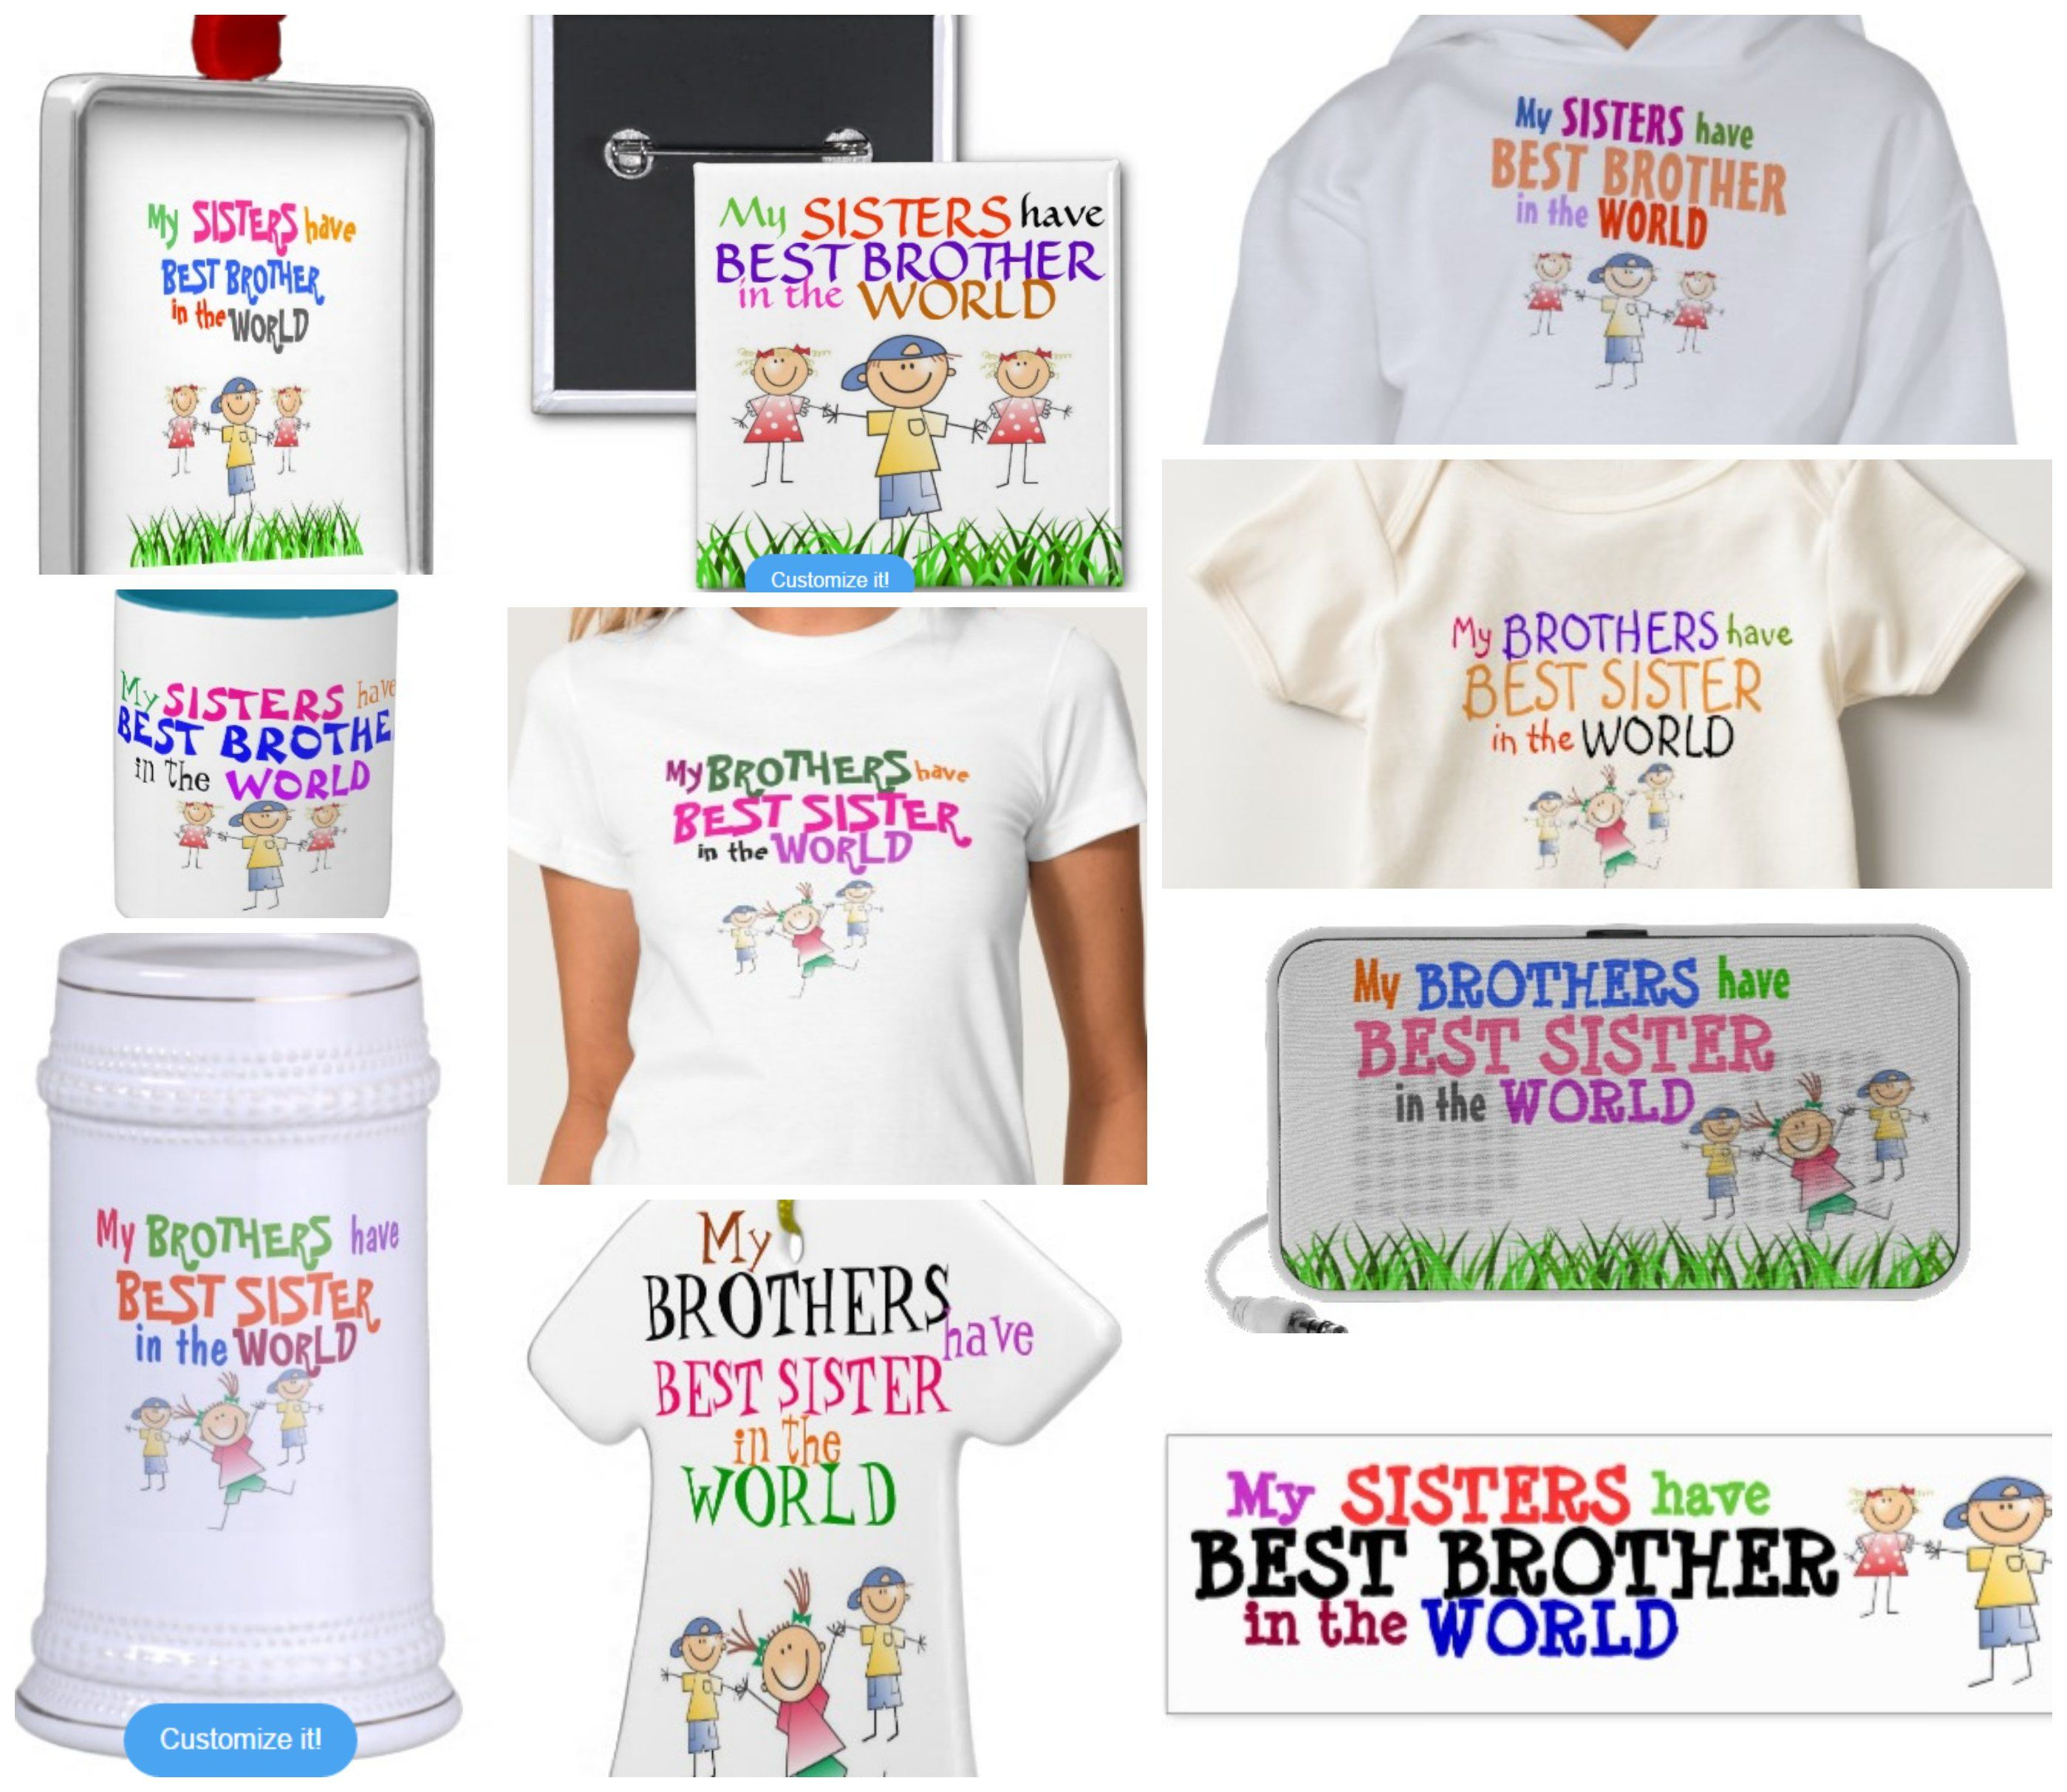 20%OFF Use Code:GETYOURCARDS #BestBrother #BestSister #siblinggoals #love #family #giftideas